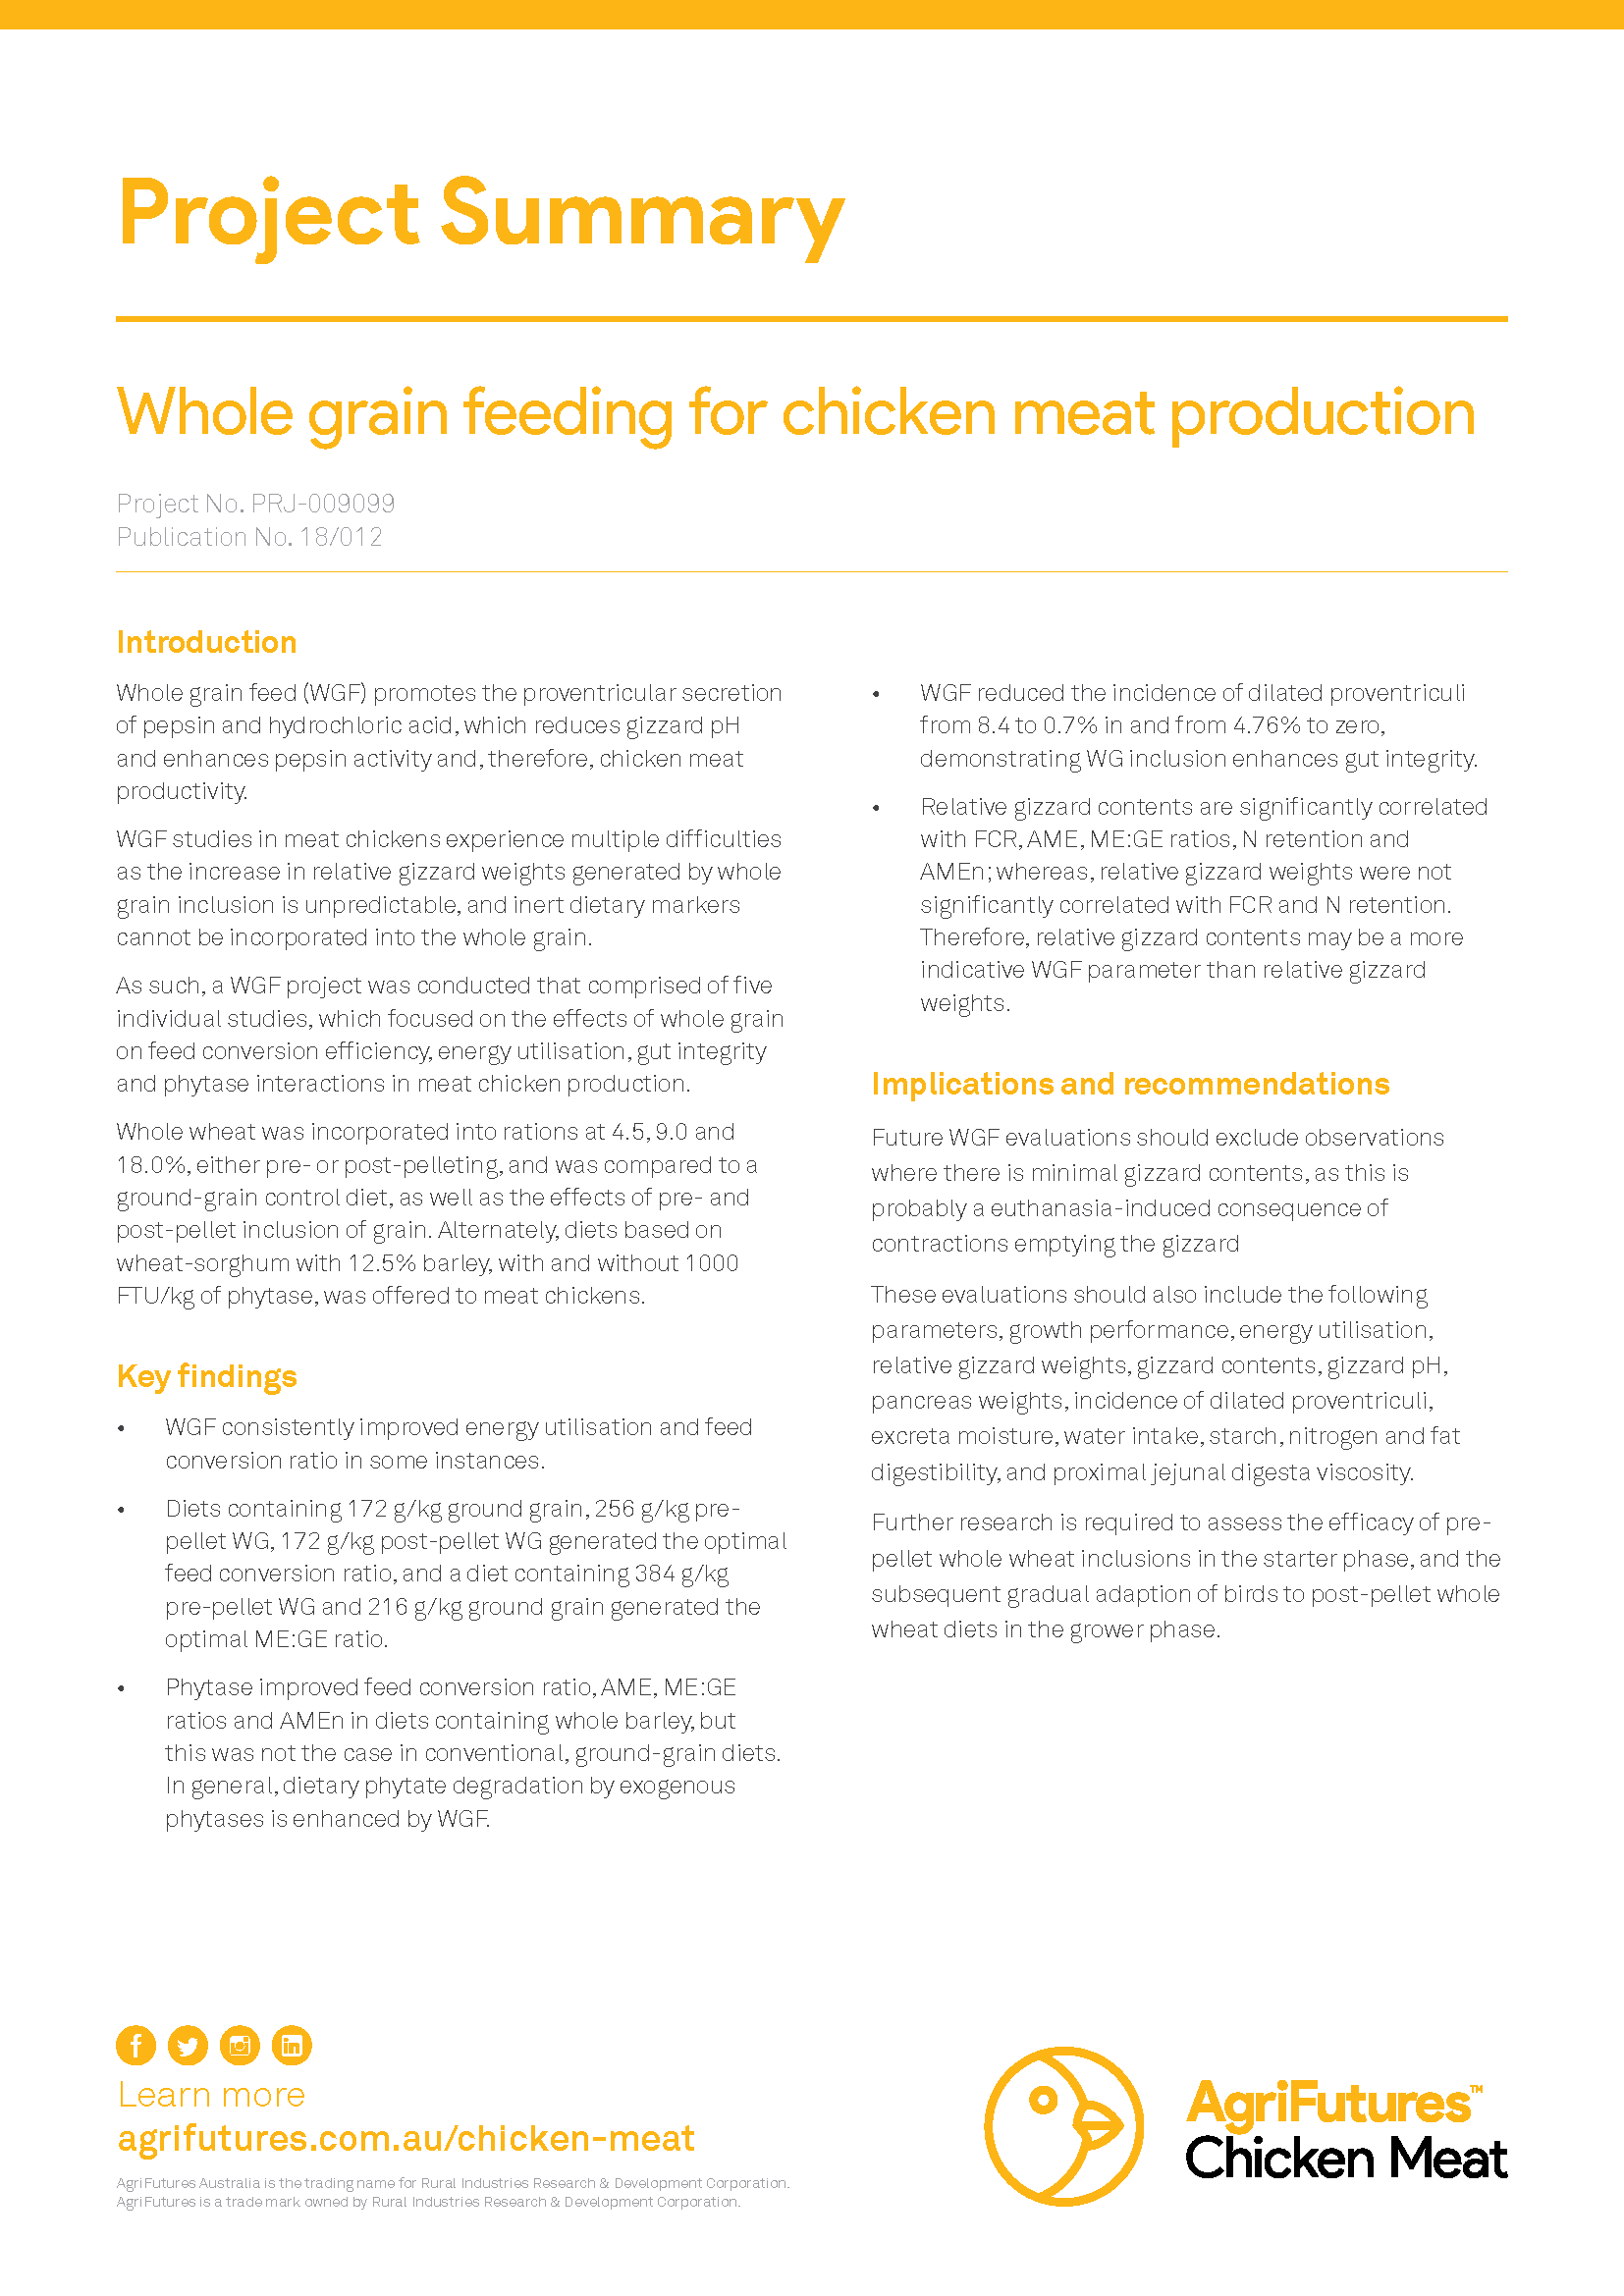 Project summary: Whole grain feeding for chicken meat production - image